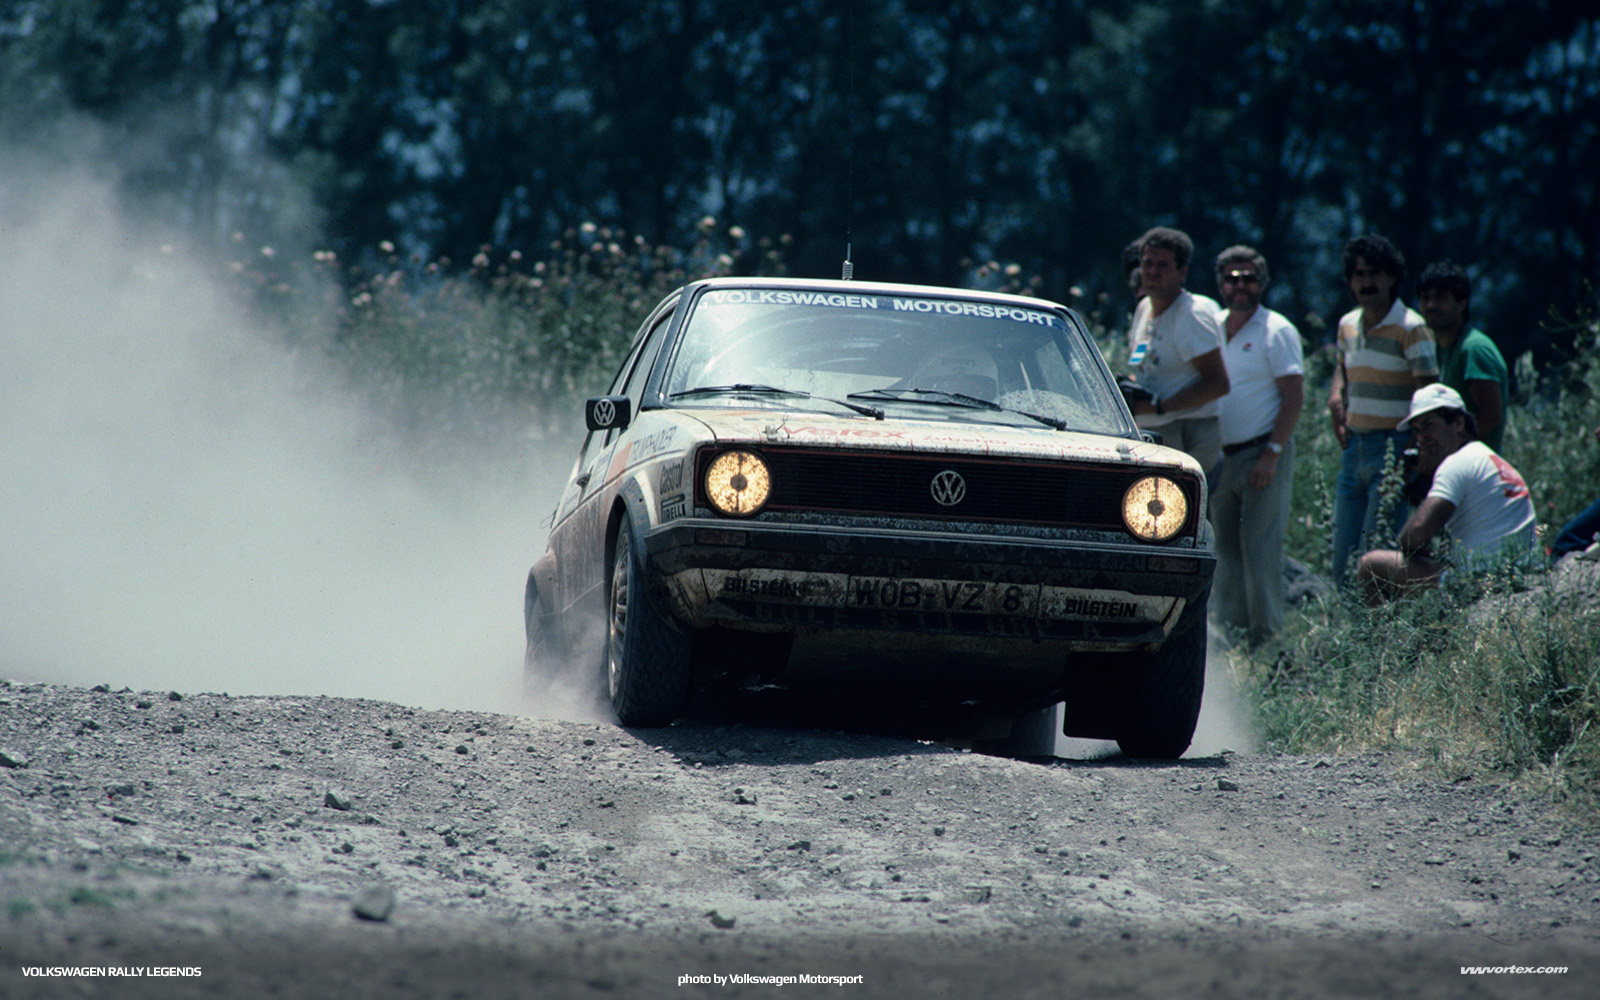 volkswagen-rally-legends-398